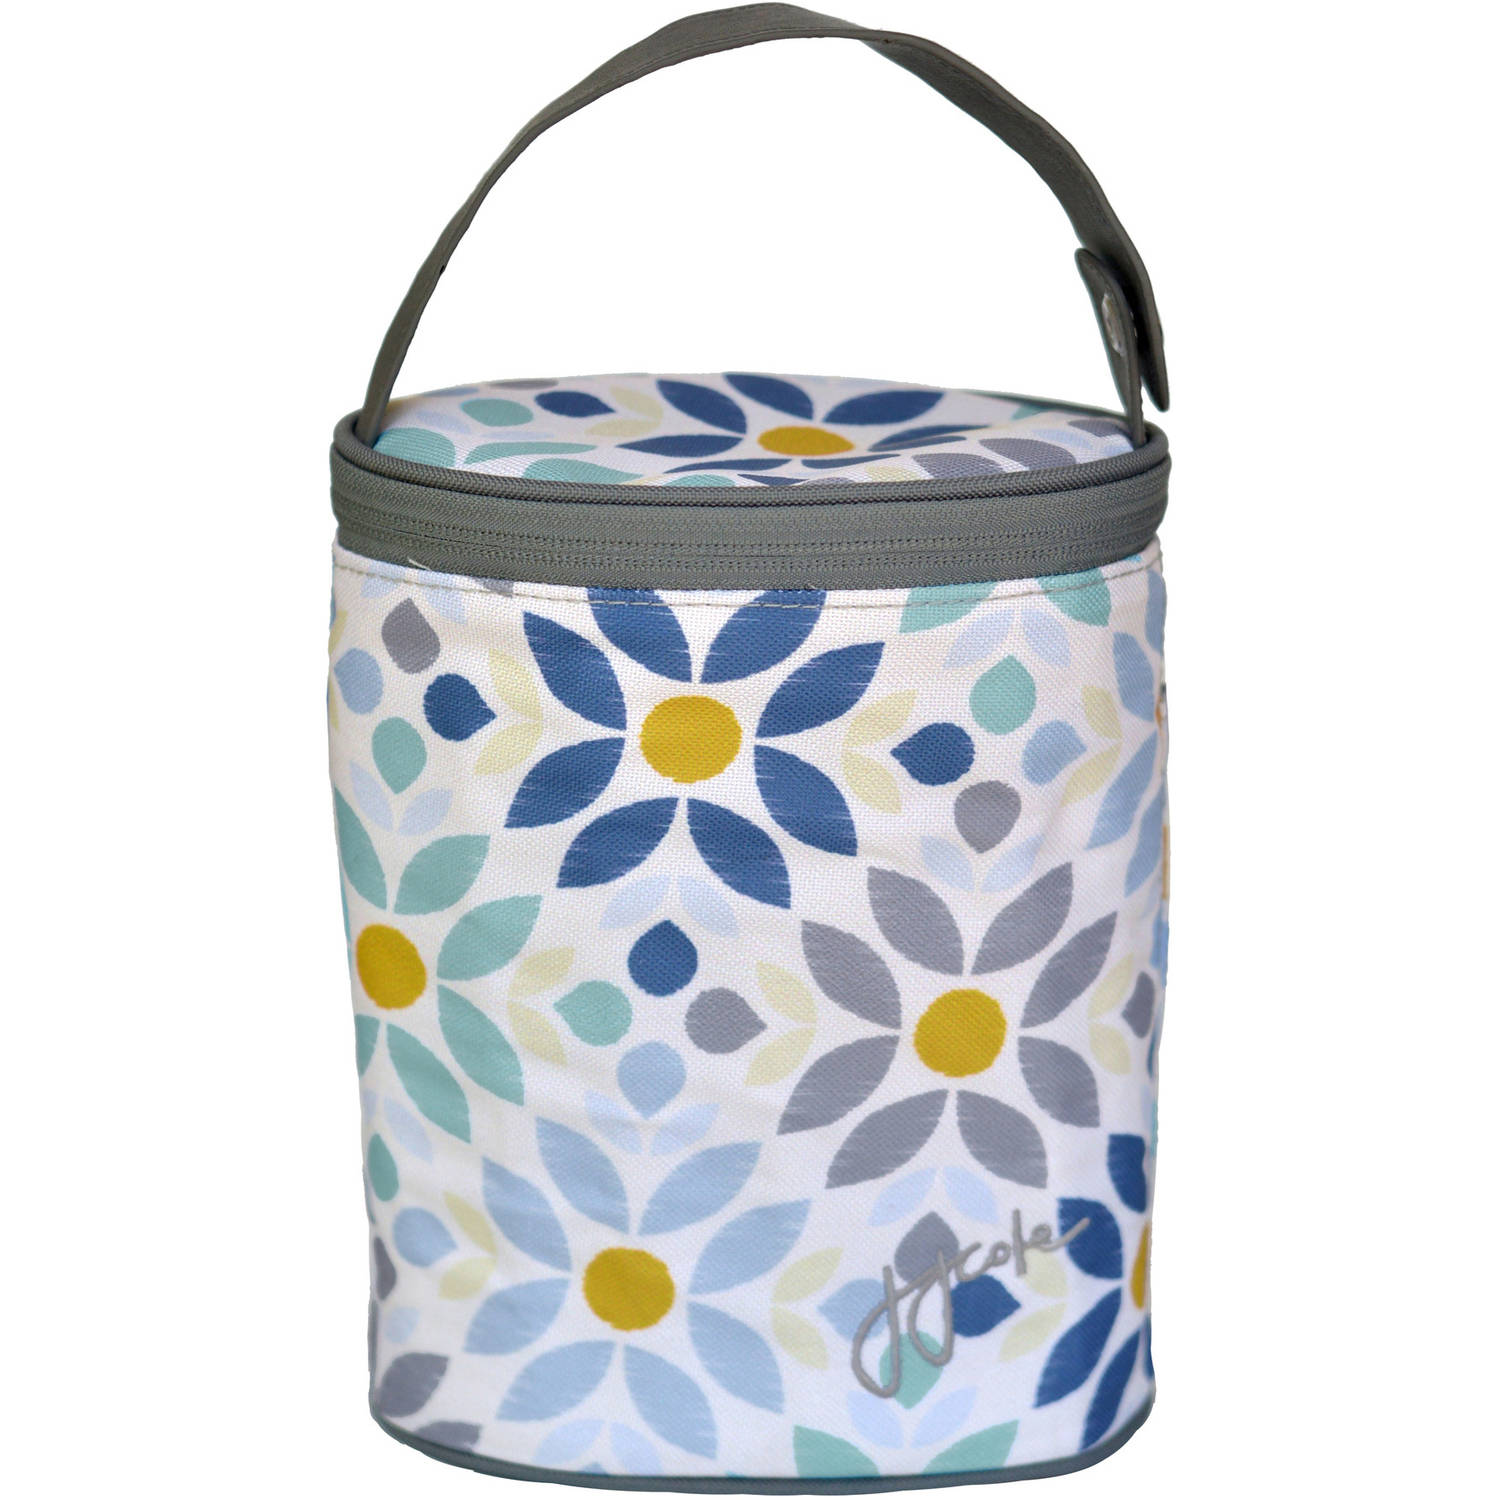 JJ Cole 2-Bottle Baby Bottle Cooler Bag, Prairie Blossom